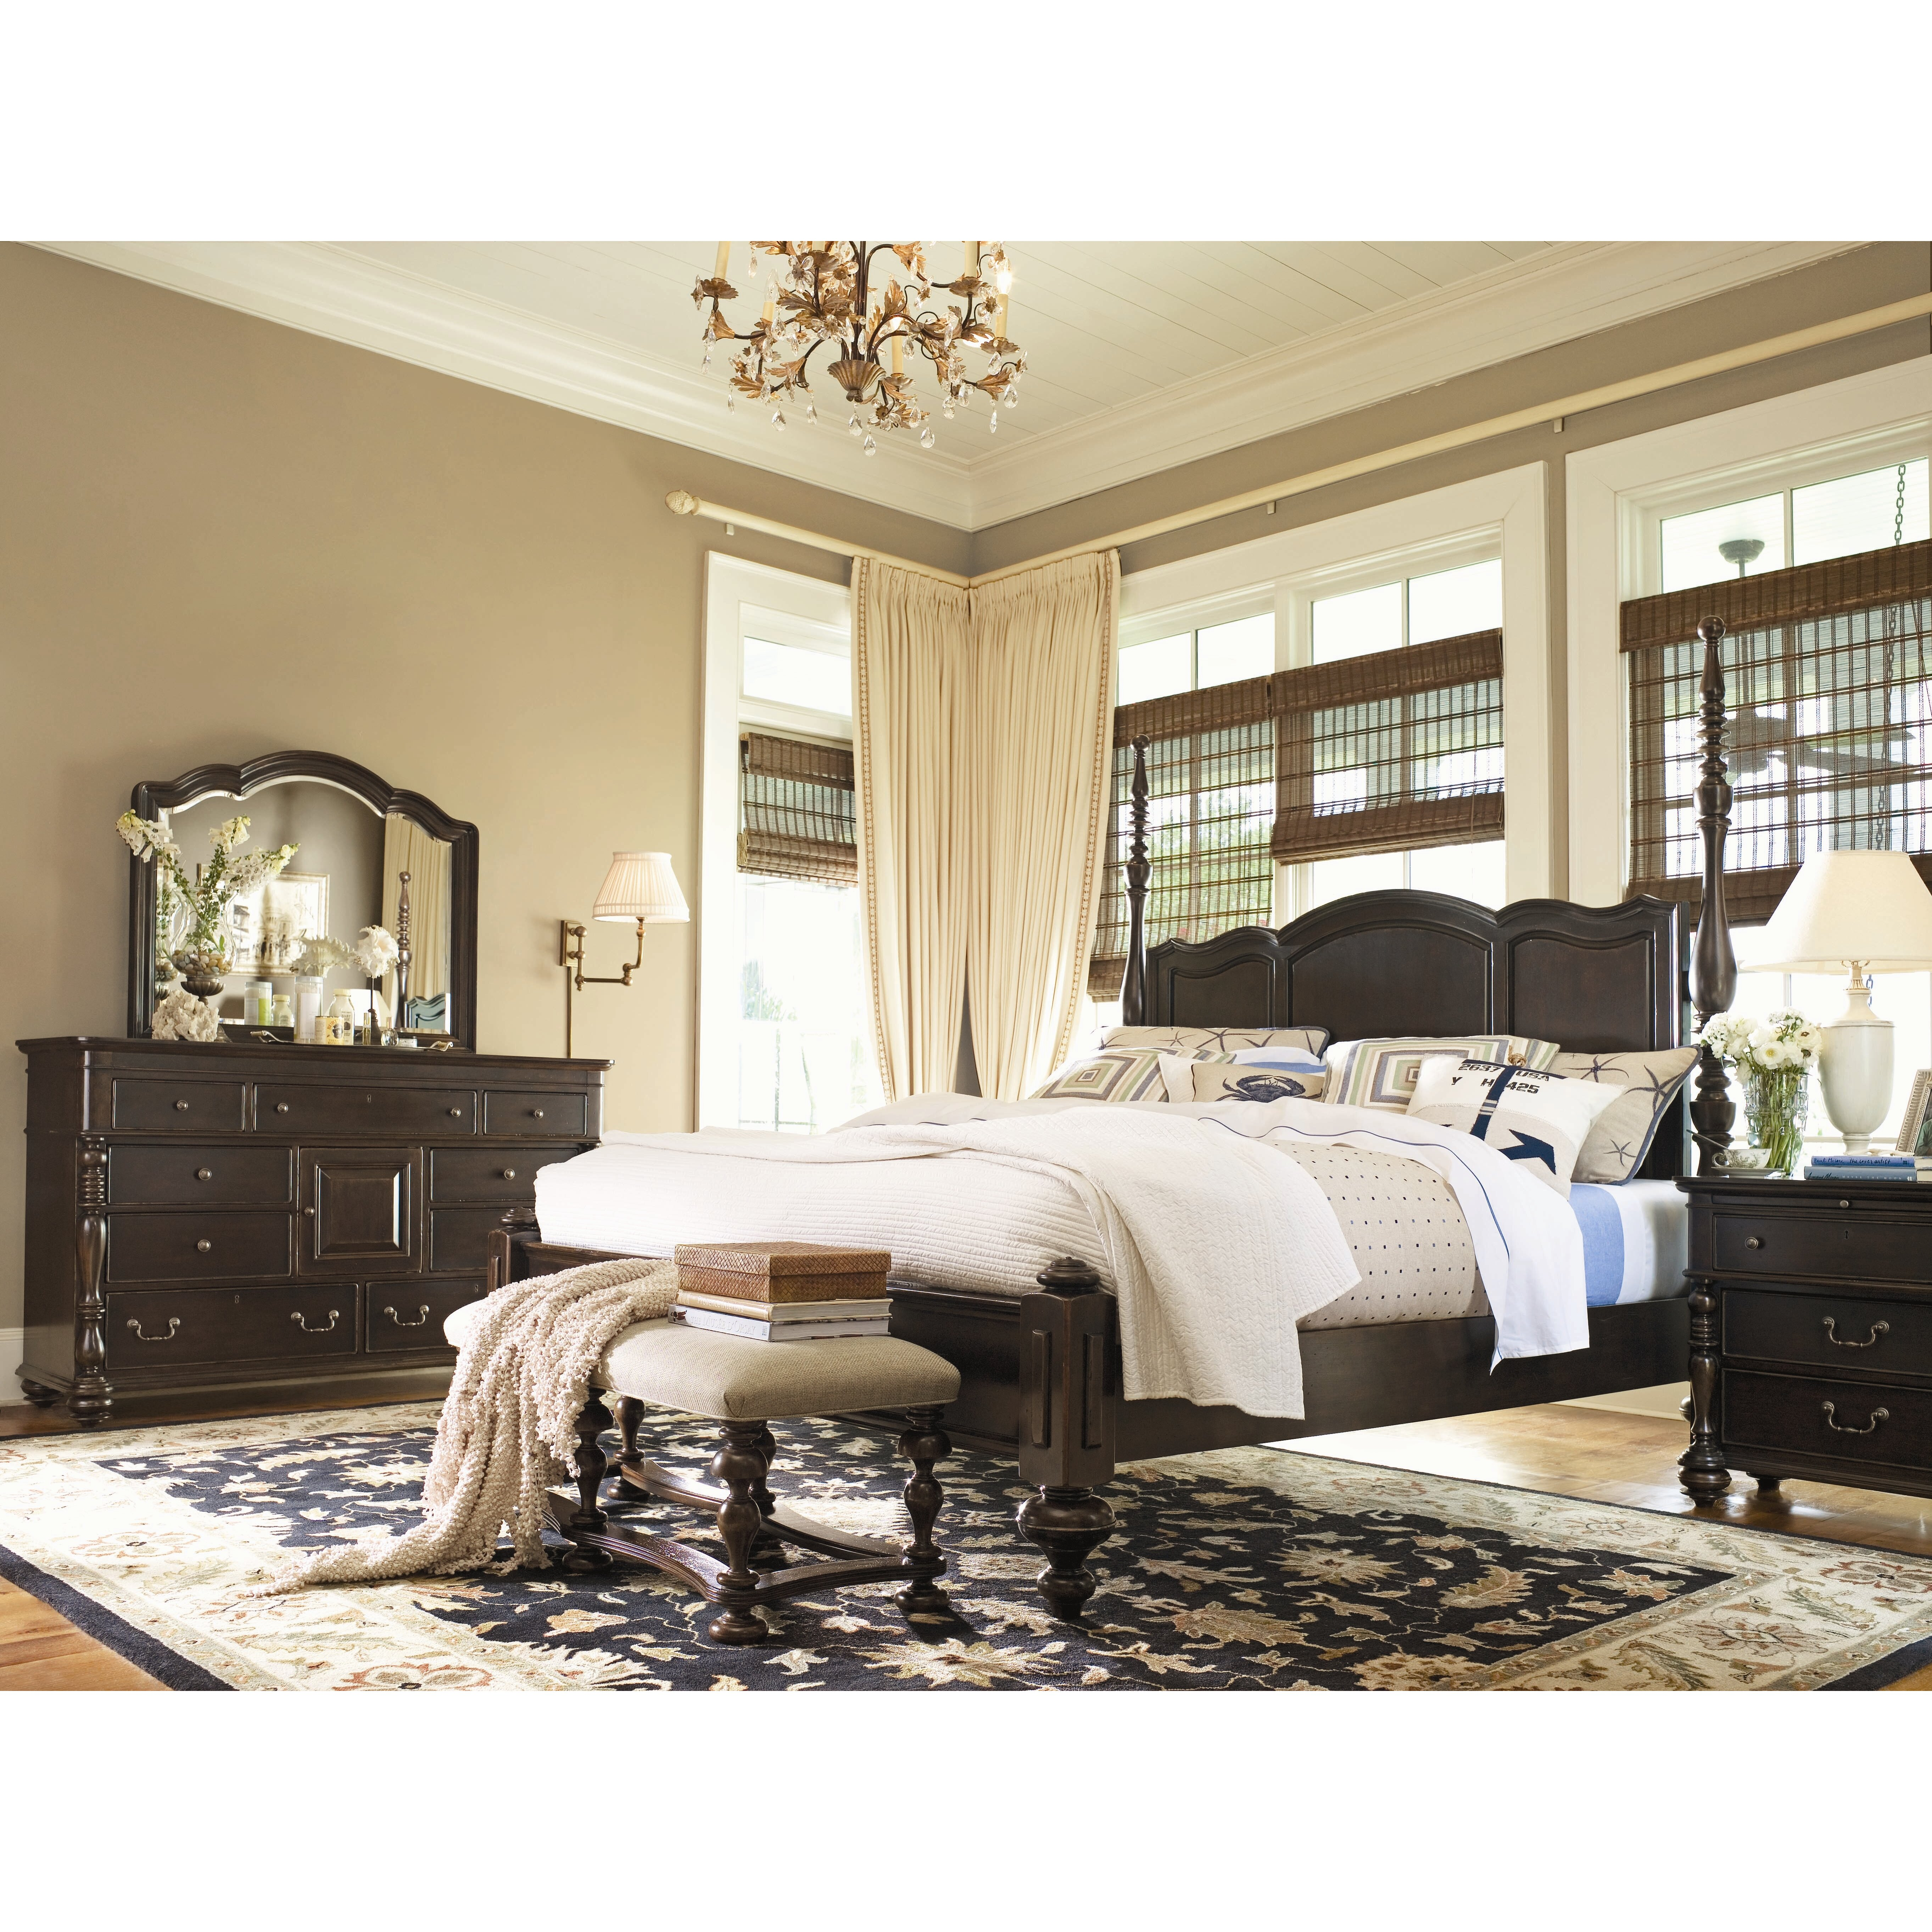 Paula deen home savannah panel customizable bedroom set - Paula deen bedroom furniture collection ...